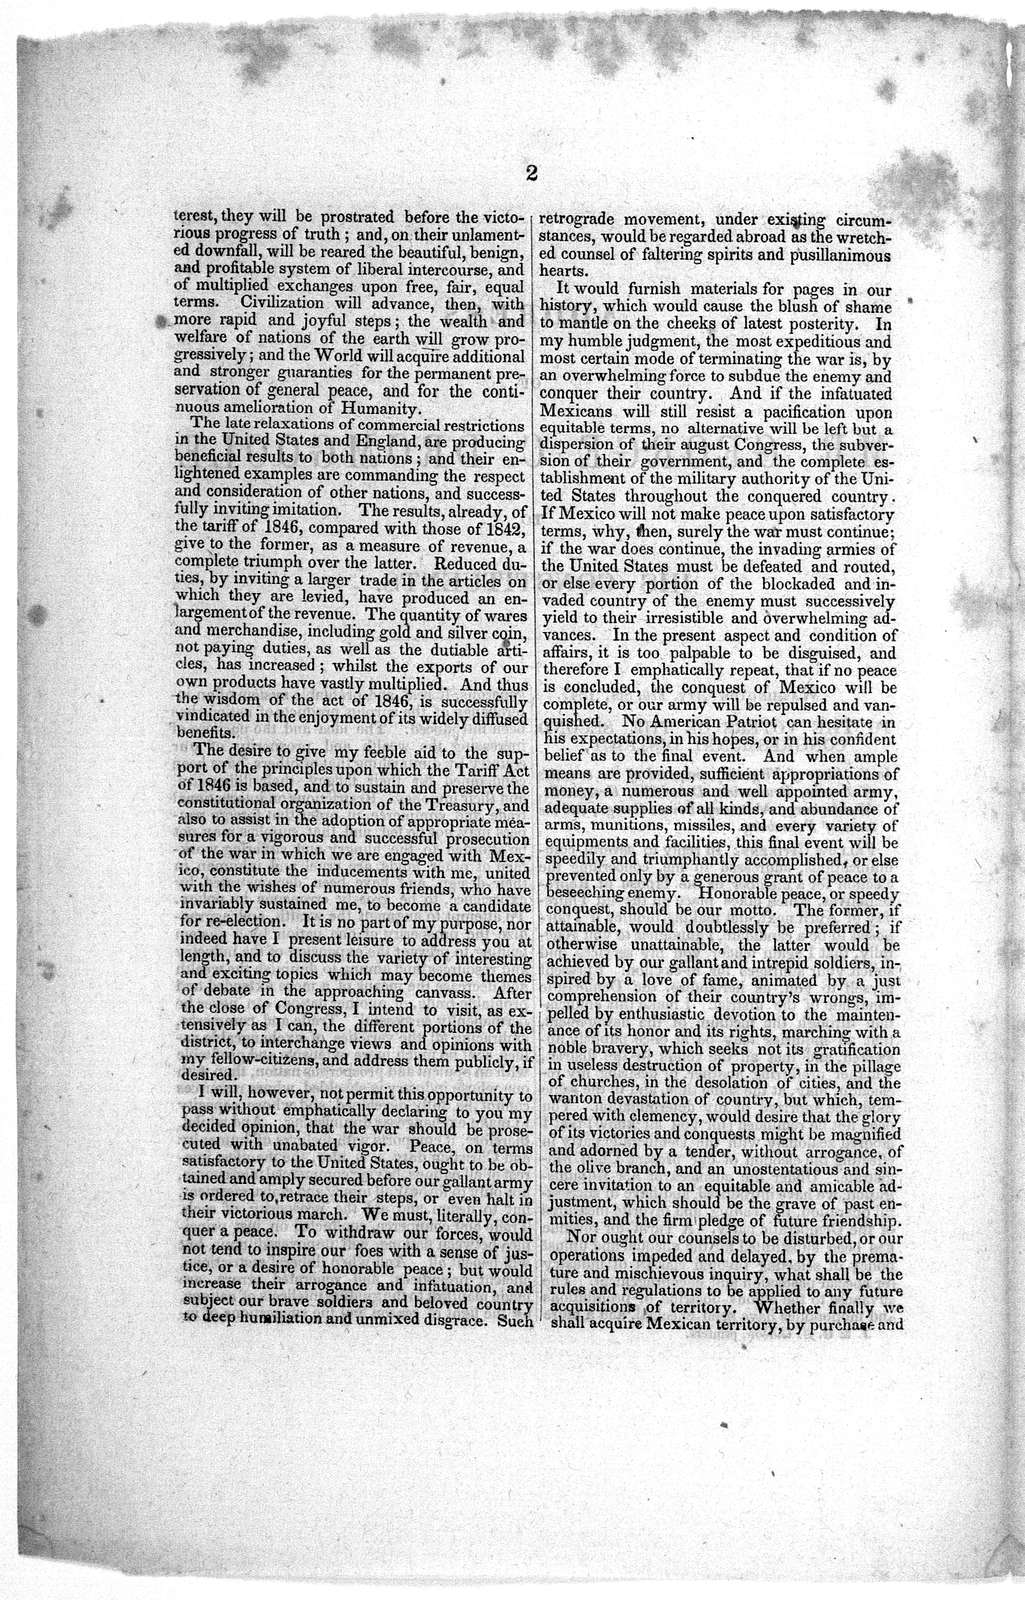 Address of Mr. George C. Dromgoole to his constituents. Washington City, Feb. 8th, 1847. To the voters of the second Congressional district. in the state of Virginia ....